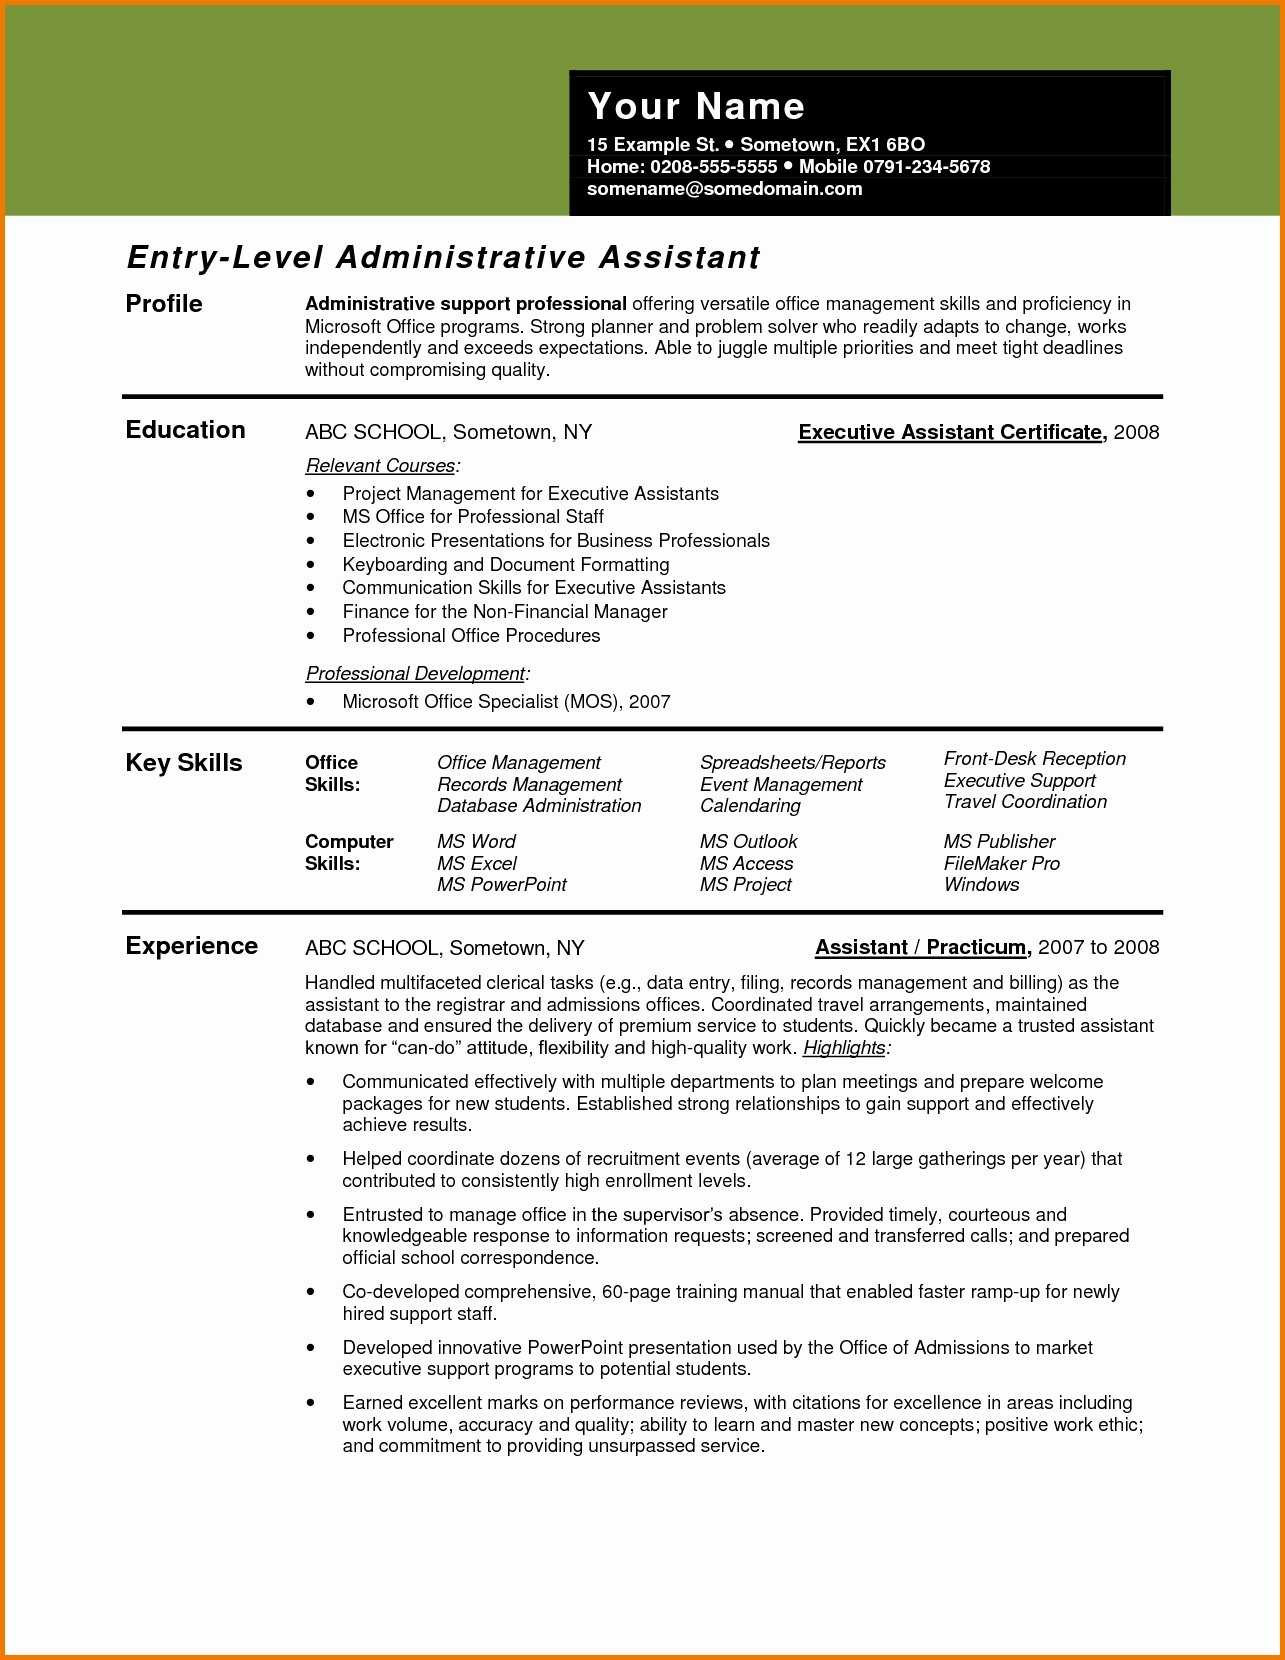 Resume Office assistant - Objective for Resume In Administrative assistant Inspirational New